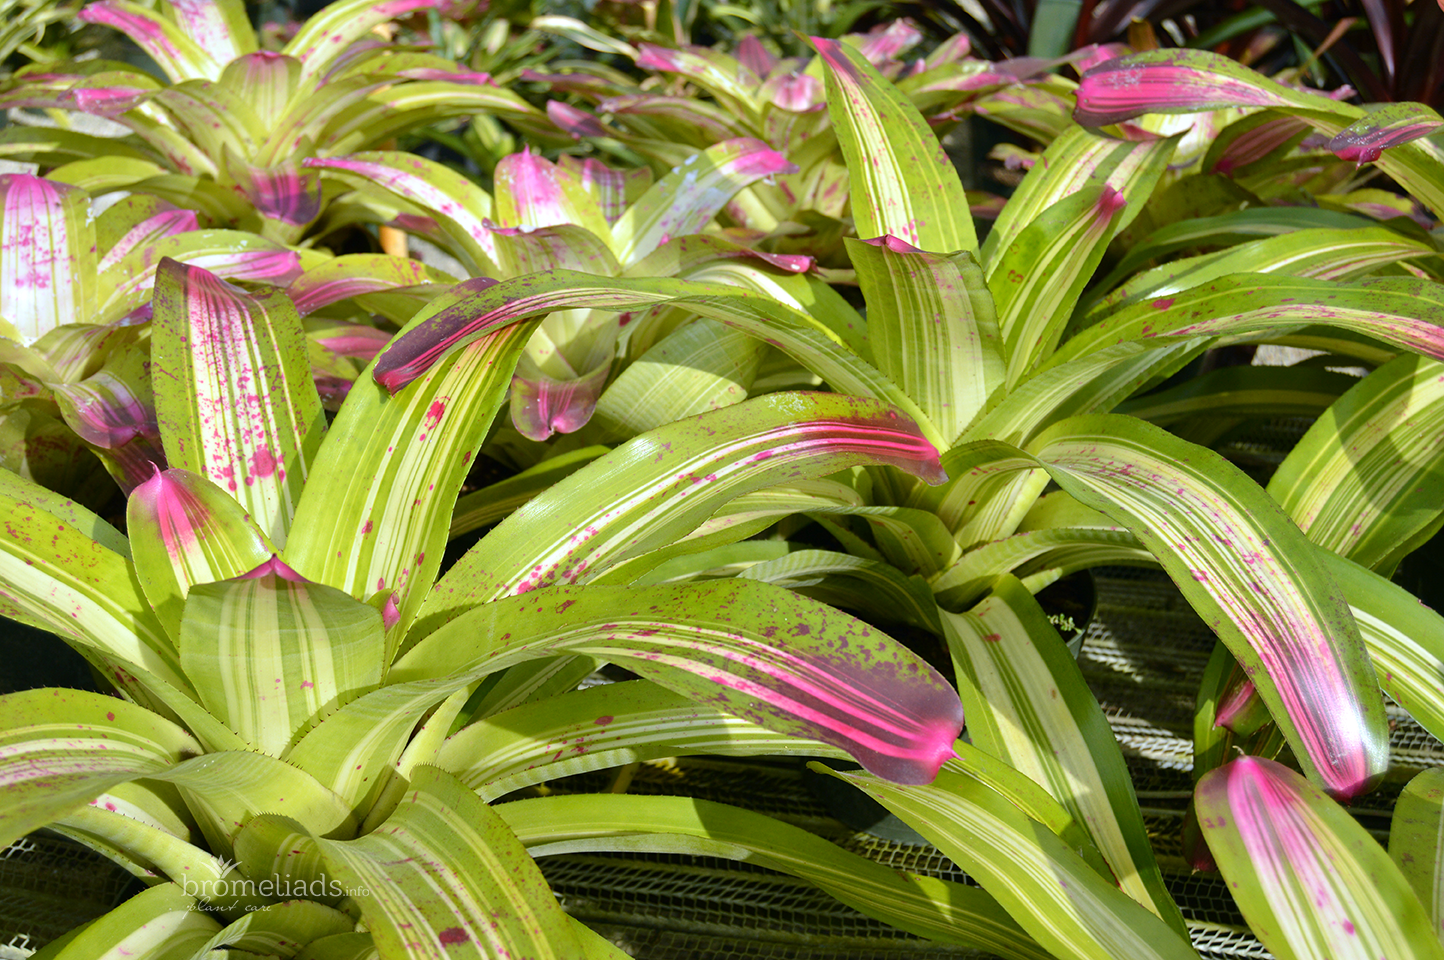 Bromeliad Foliage With Pink Tips Sunshine Bromeliads In Florida